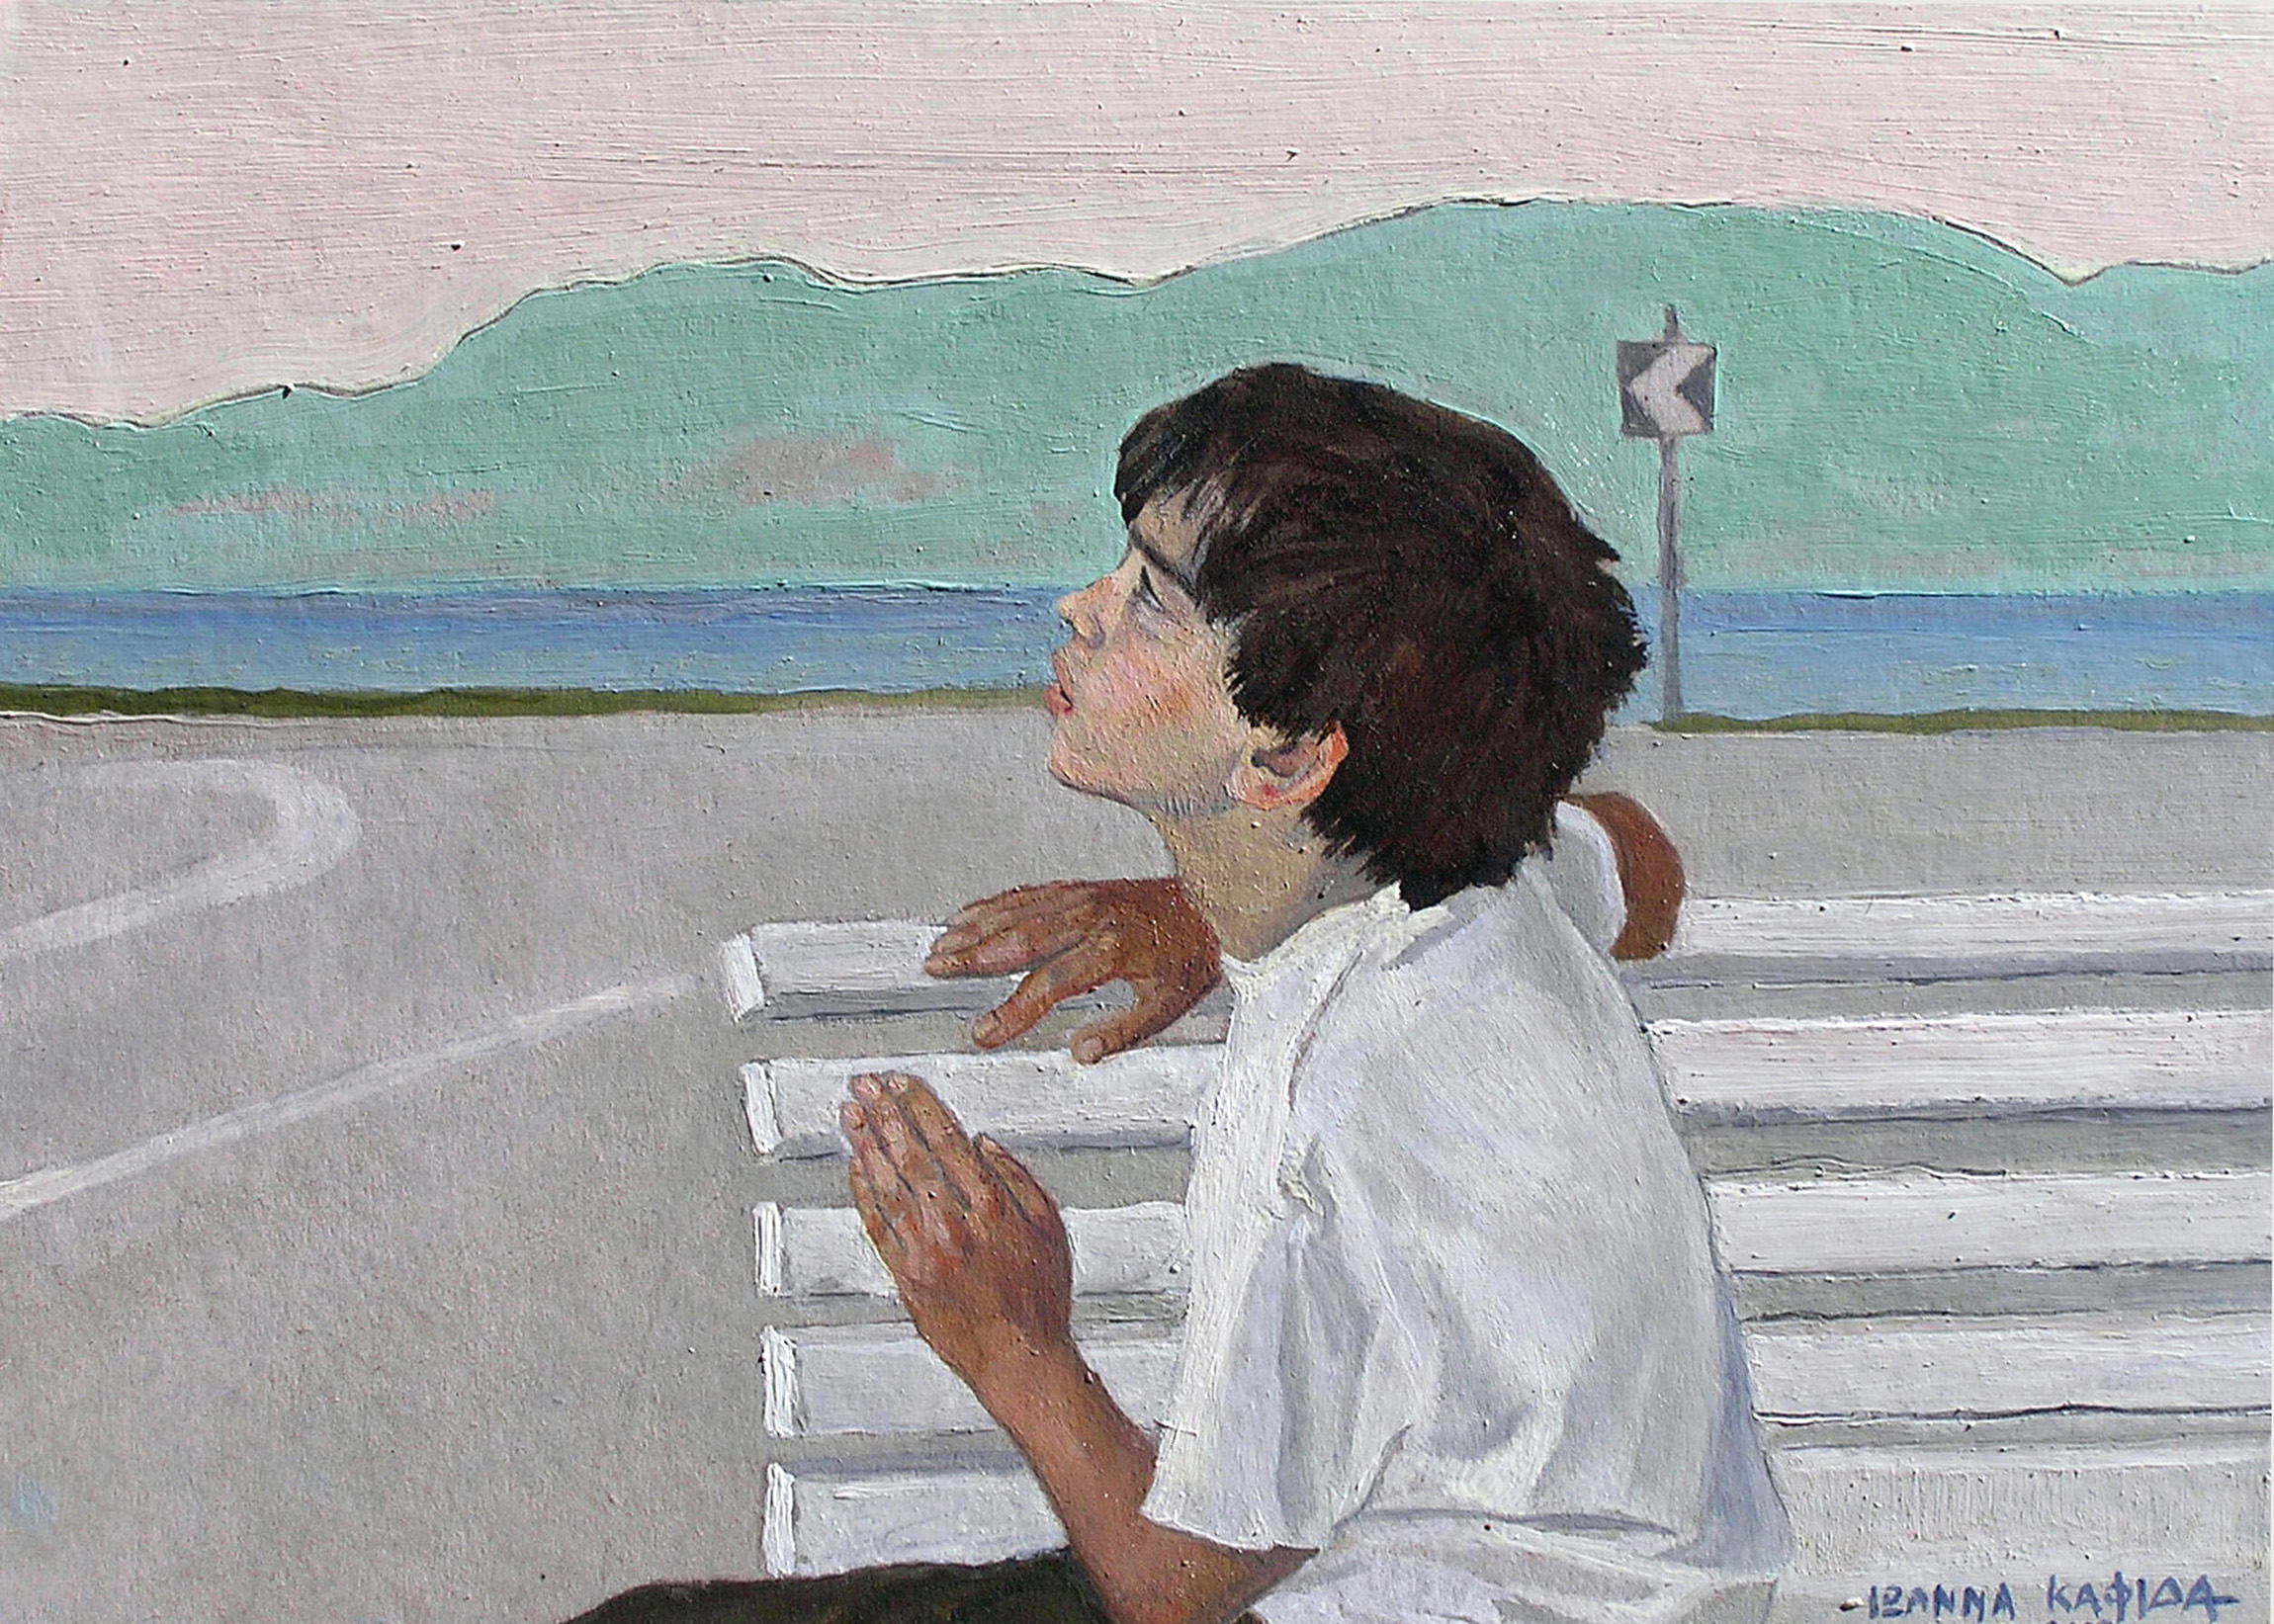 The boy and the road, 2008